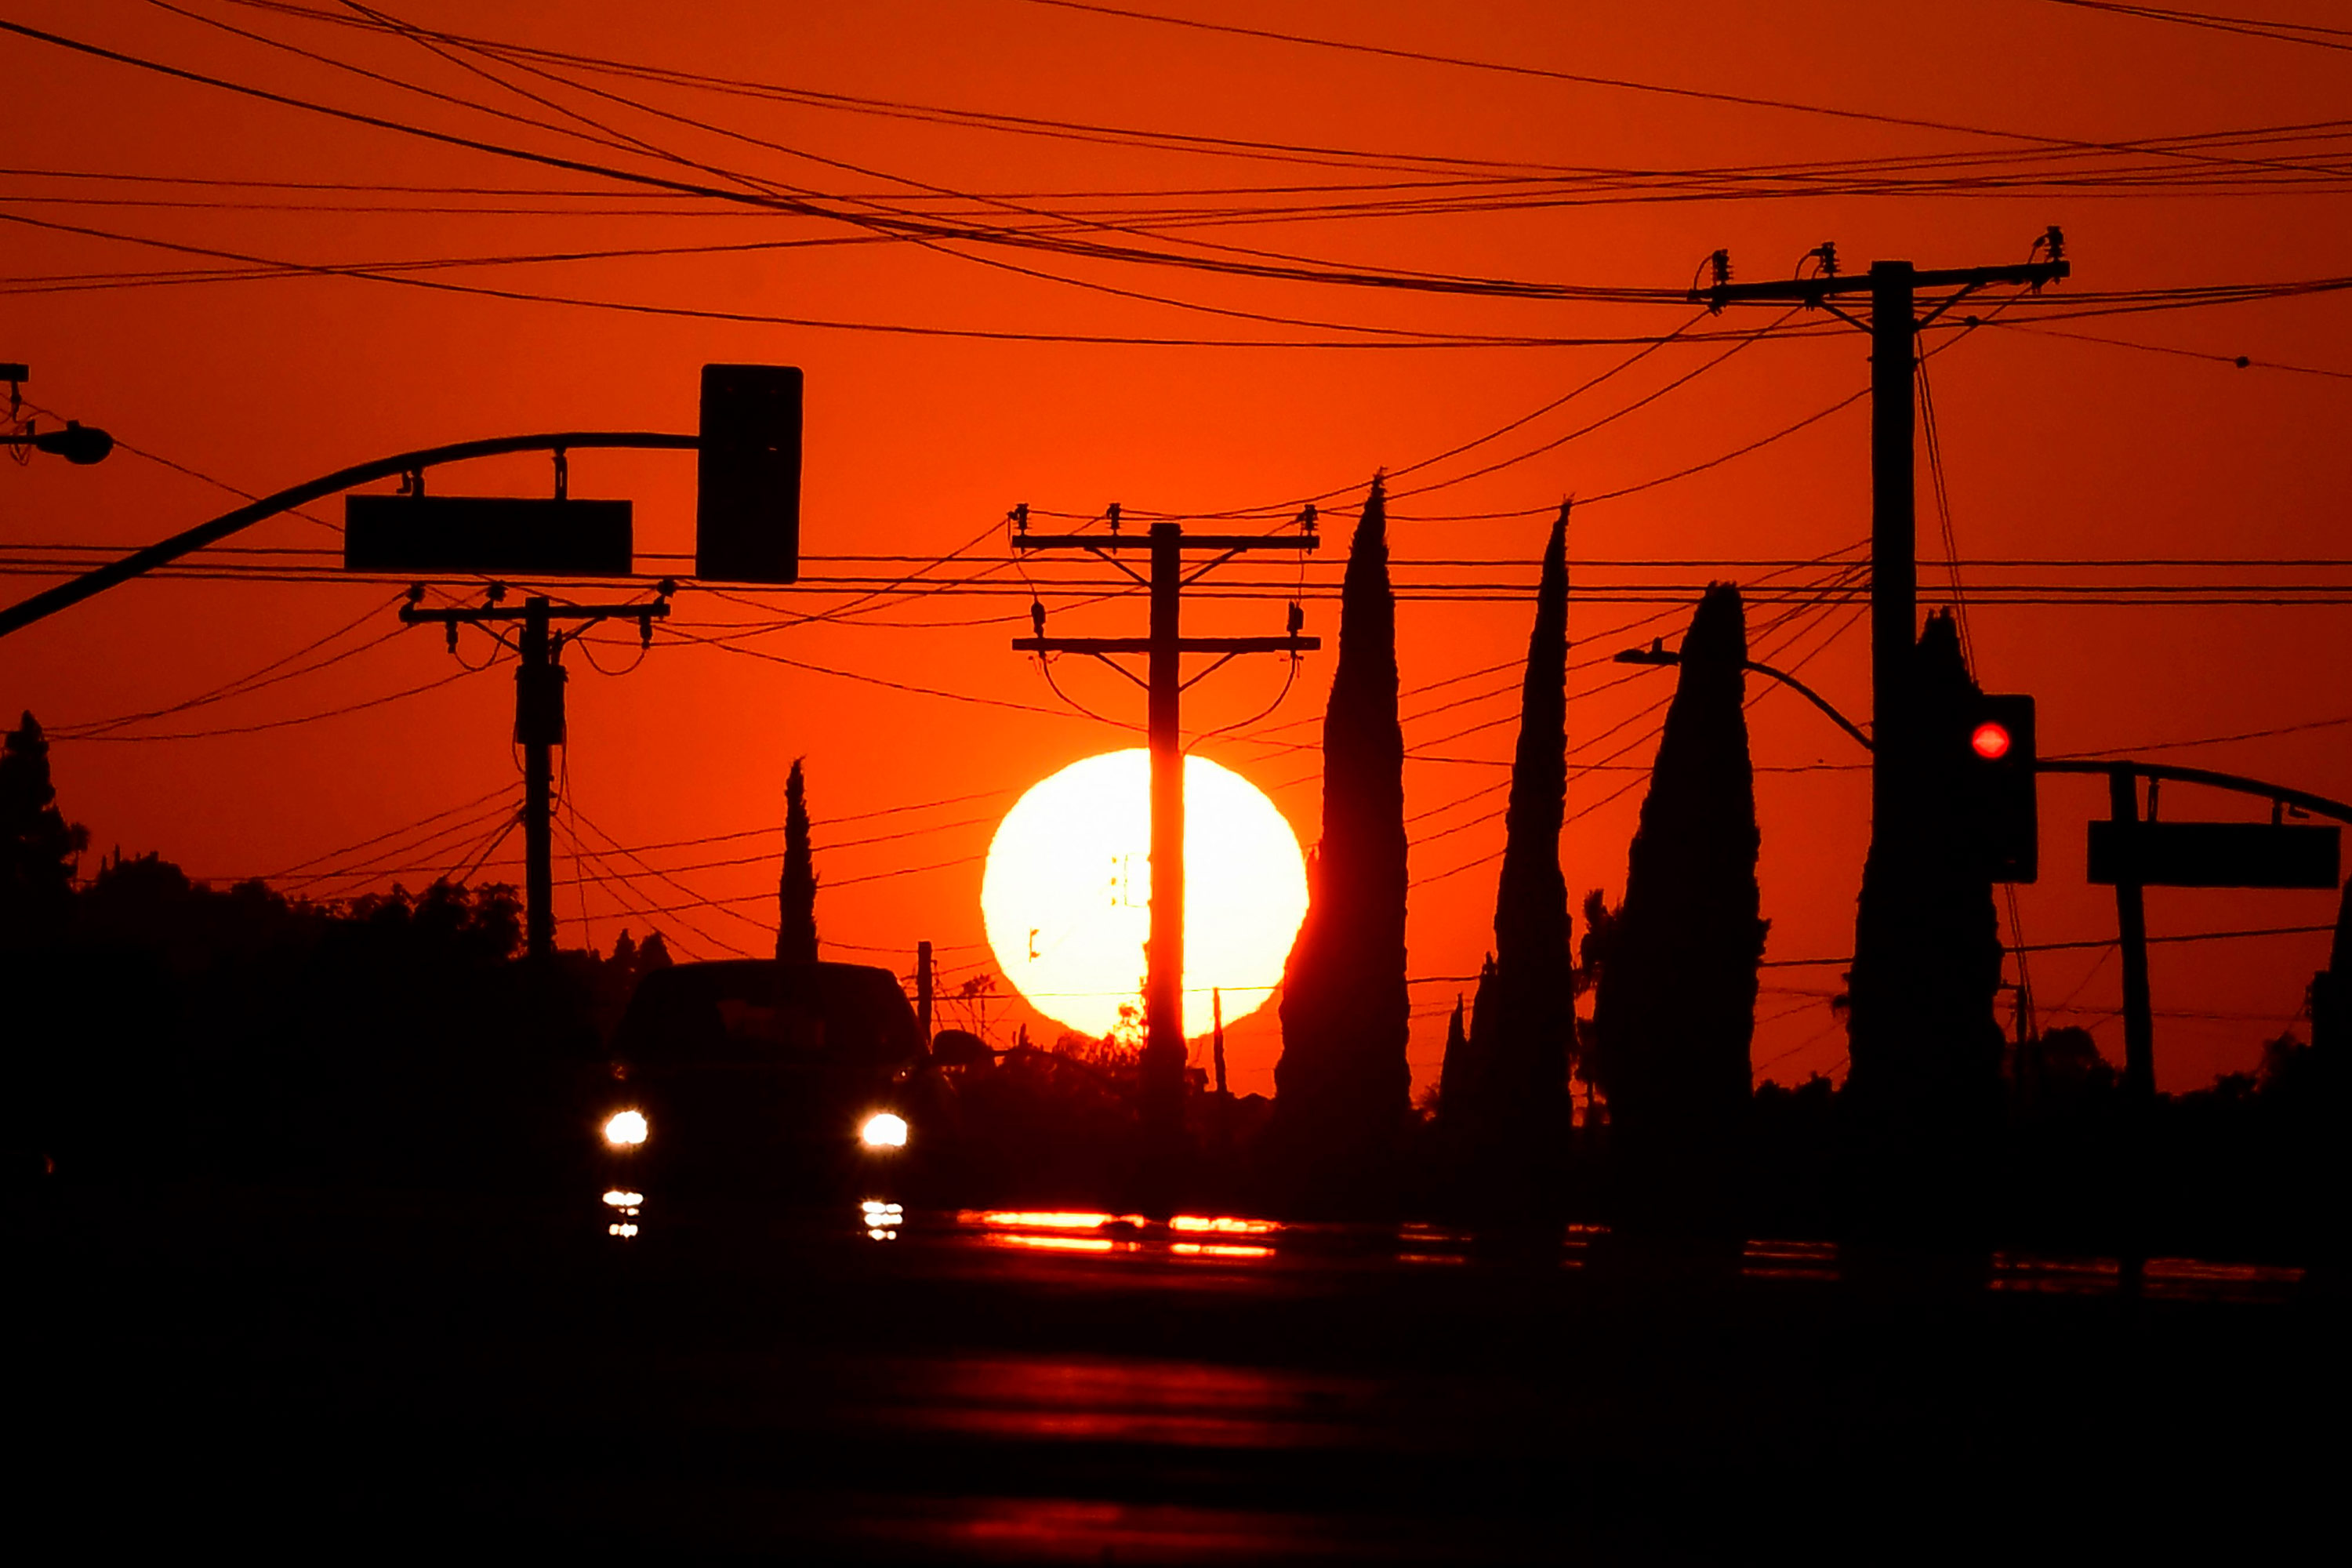 The sun sets behind power lines in Los Angeles, California on September 3, 2020, ahead of a heatwave to arrive September 4 through the Labour Day weekend prompting a statewide flex alert.